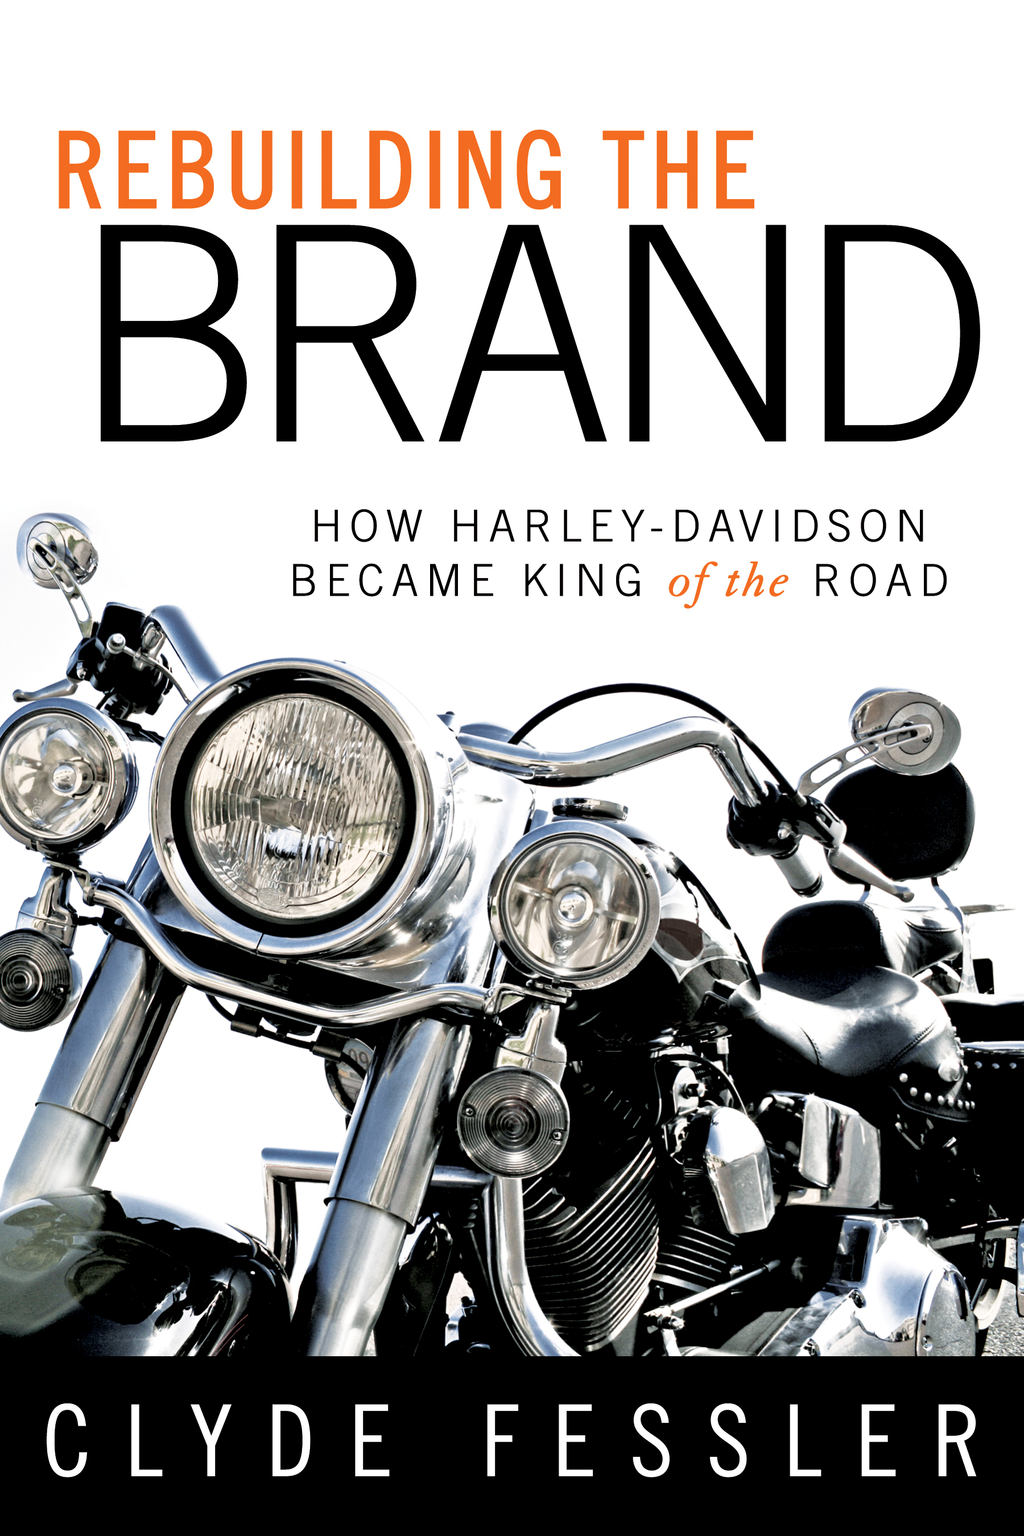 Rebuilding the Brand: How Harley-Davidson Became the King of the Road By: Clyde Fessler